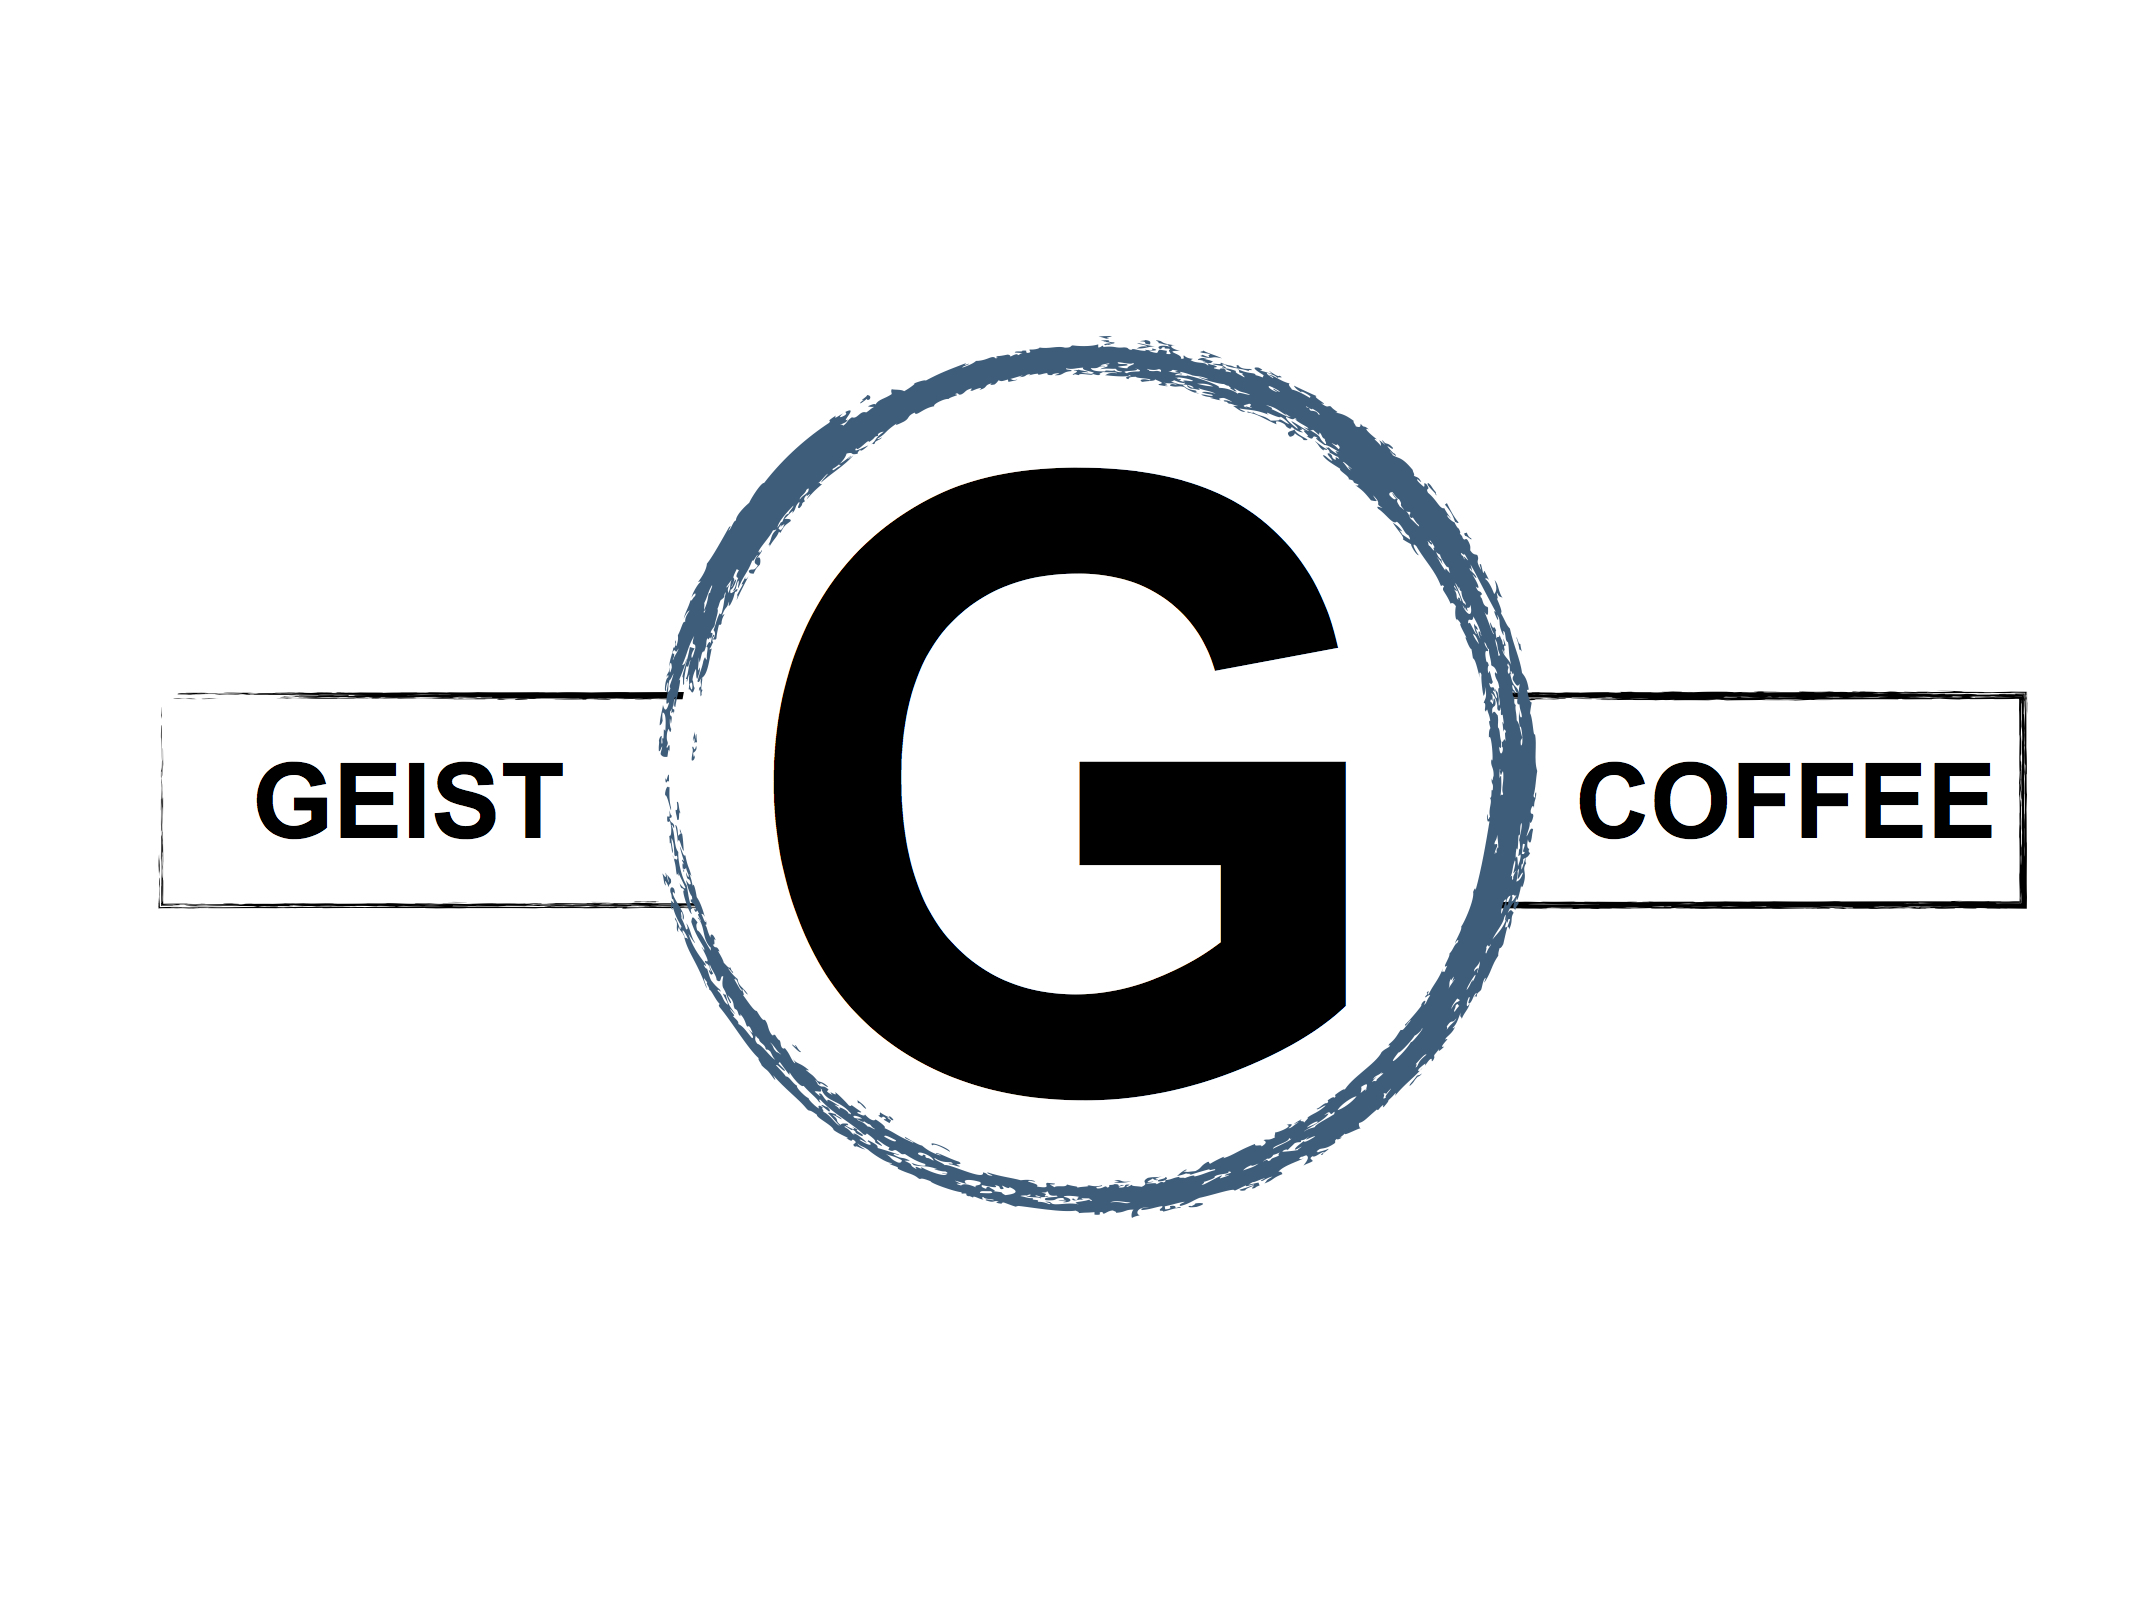 - Geist Coffee Co is a family owned coffee craft house serving as the community gathering spot in the Geist area. We specialize in high quality espresso, coffee, pastries and sandwiches.